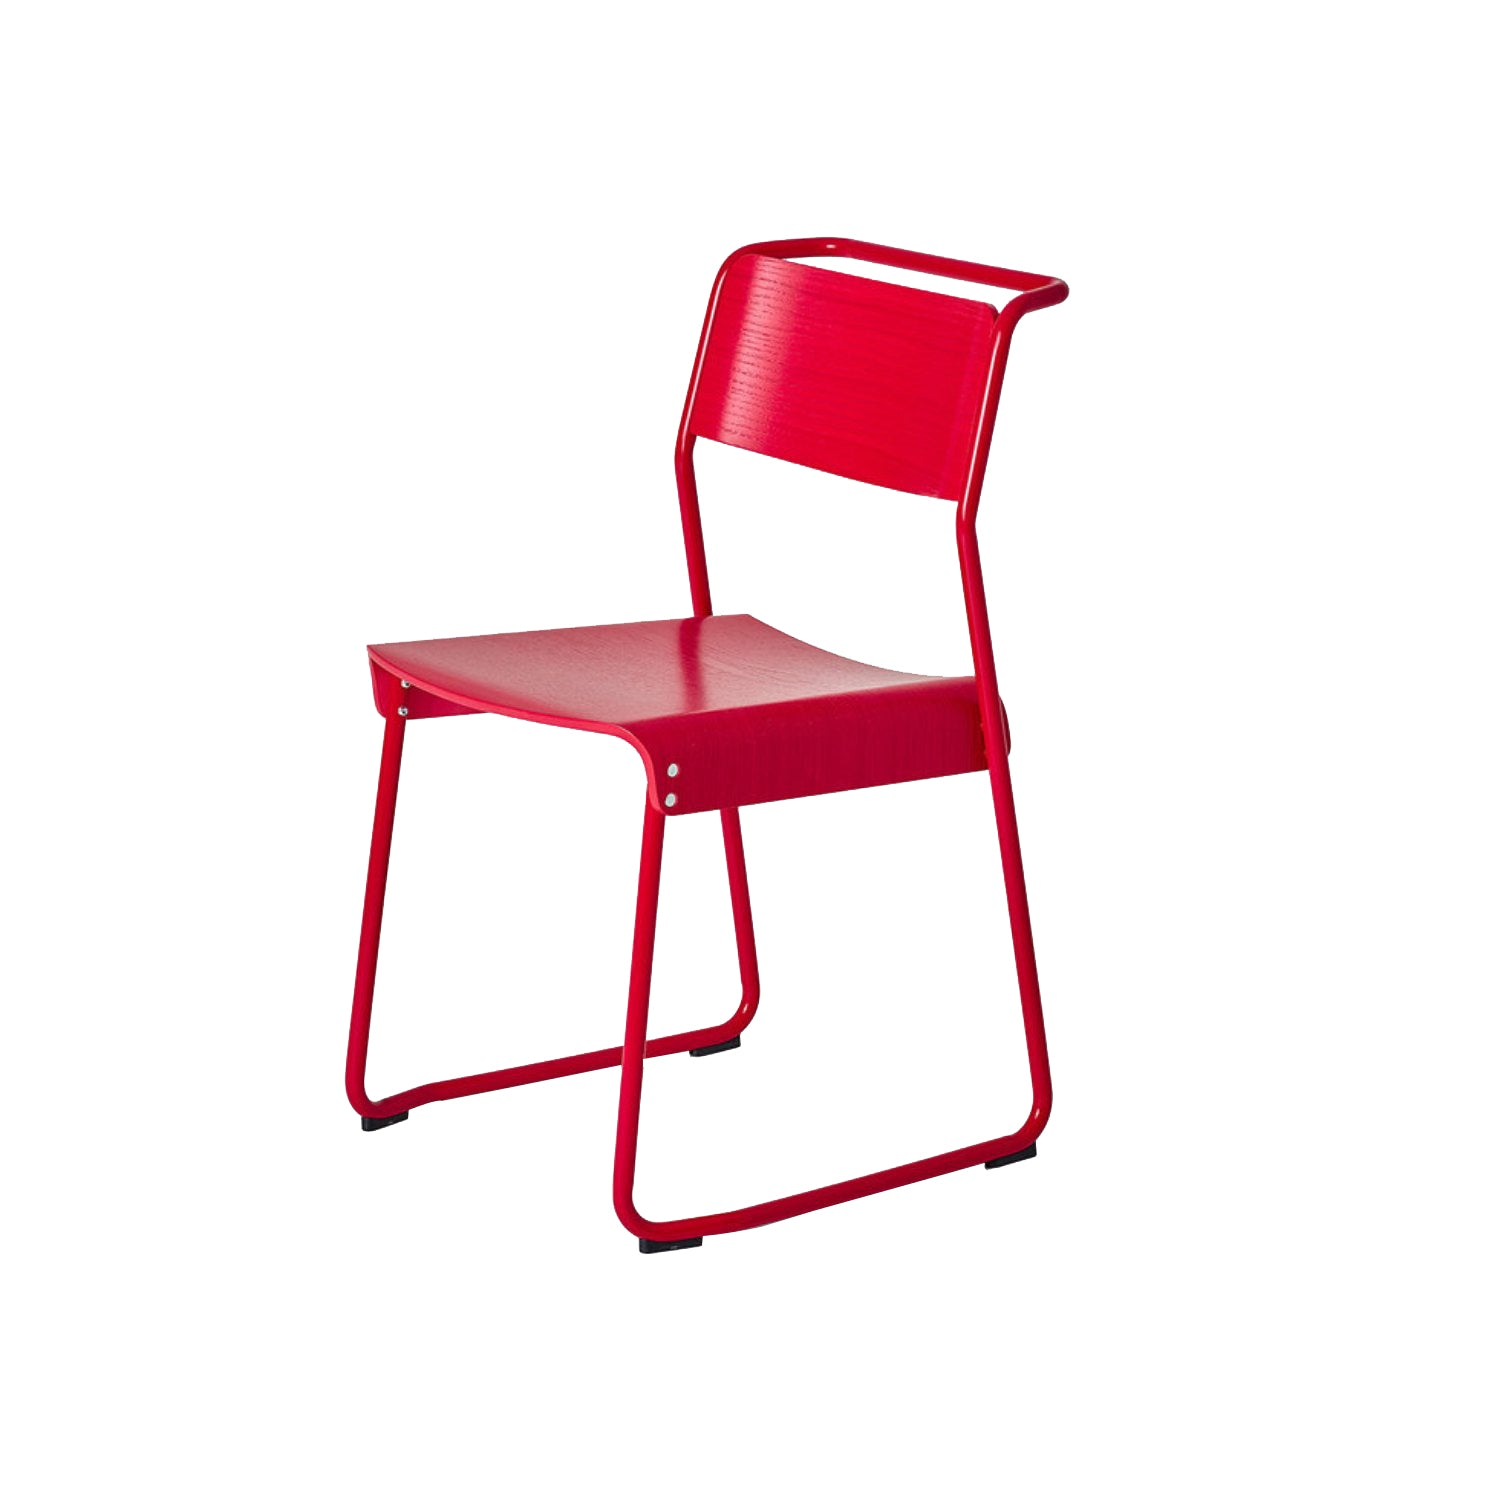 Canteen Utility Chair: Solid Colors + Signal Red